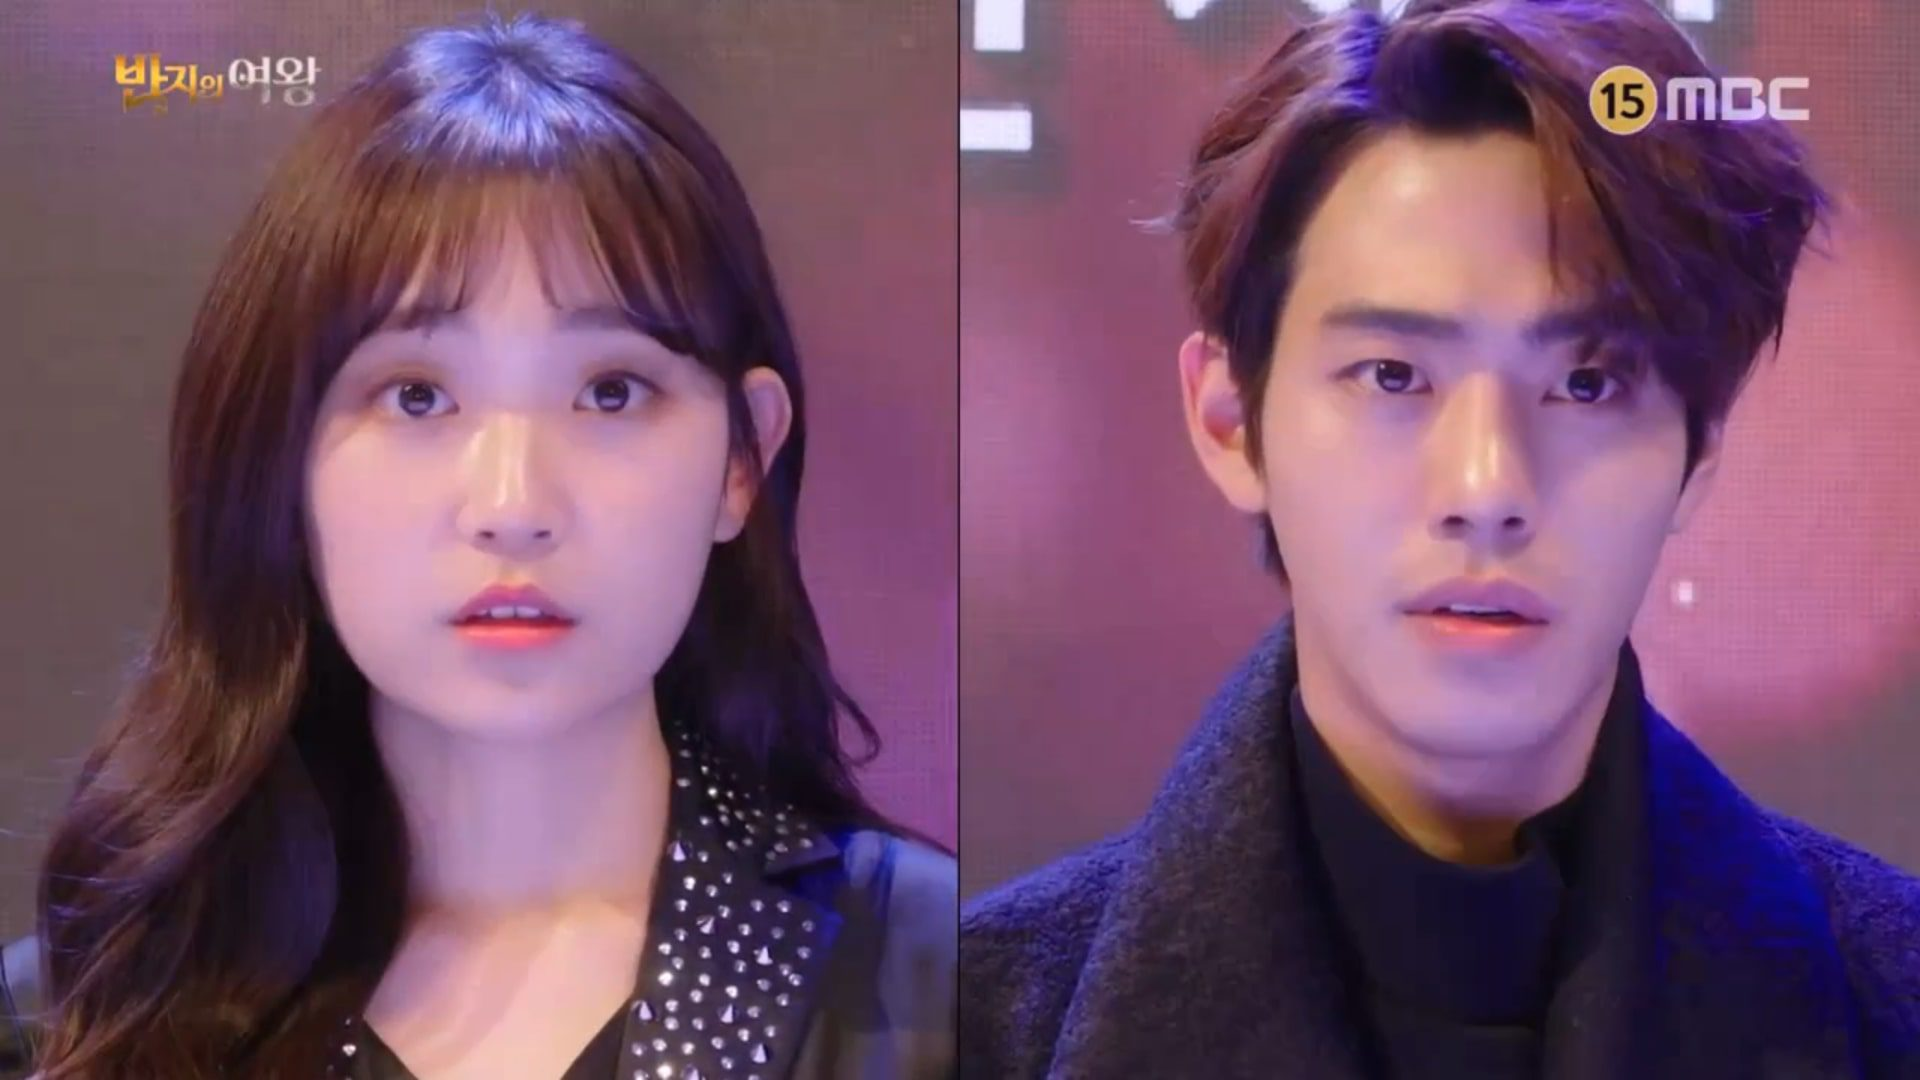 Kdrama Of The Day' Three Color Fantasy: Queen Of The Ring' Cast, Review & Where To Watch